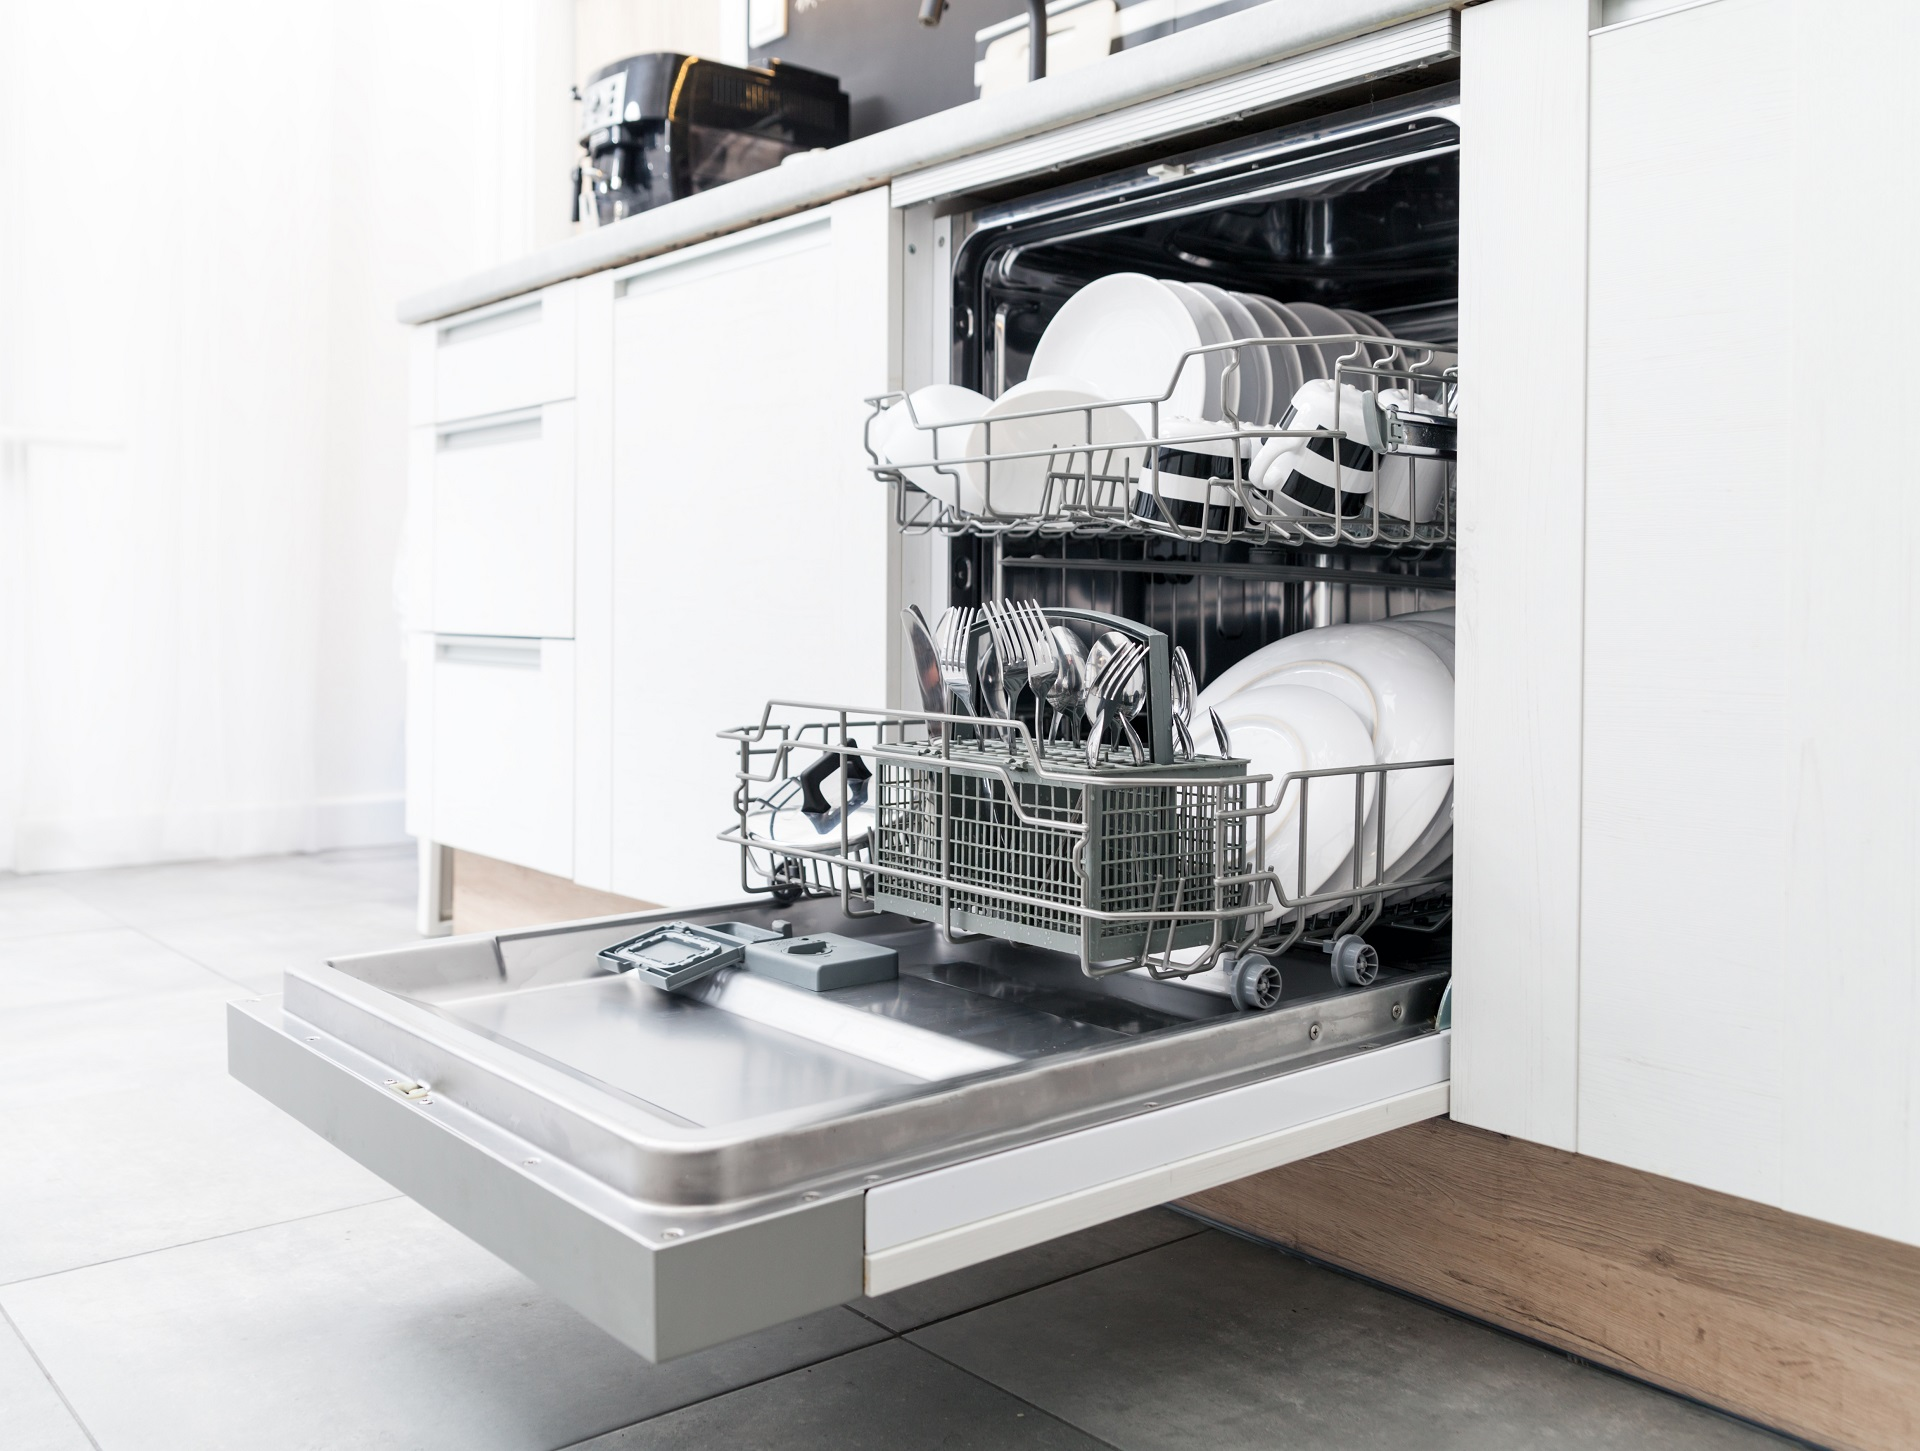 18 Portable Dishwasher Canada Best Dishwasher Under 400 600 Dollars Reviews Top 5 In May 2019